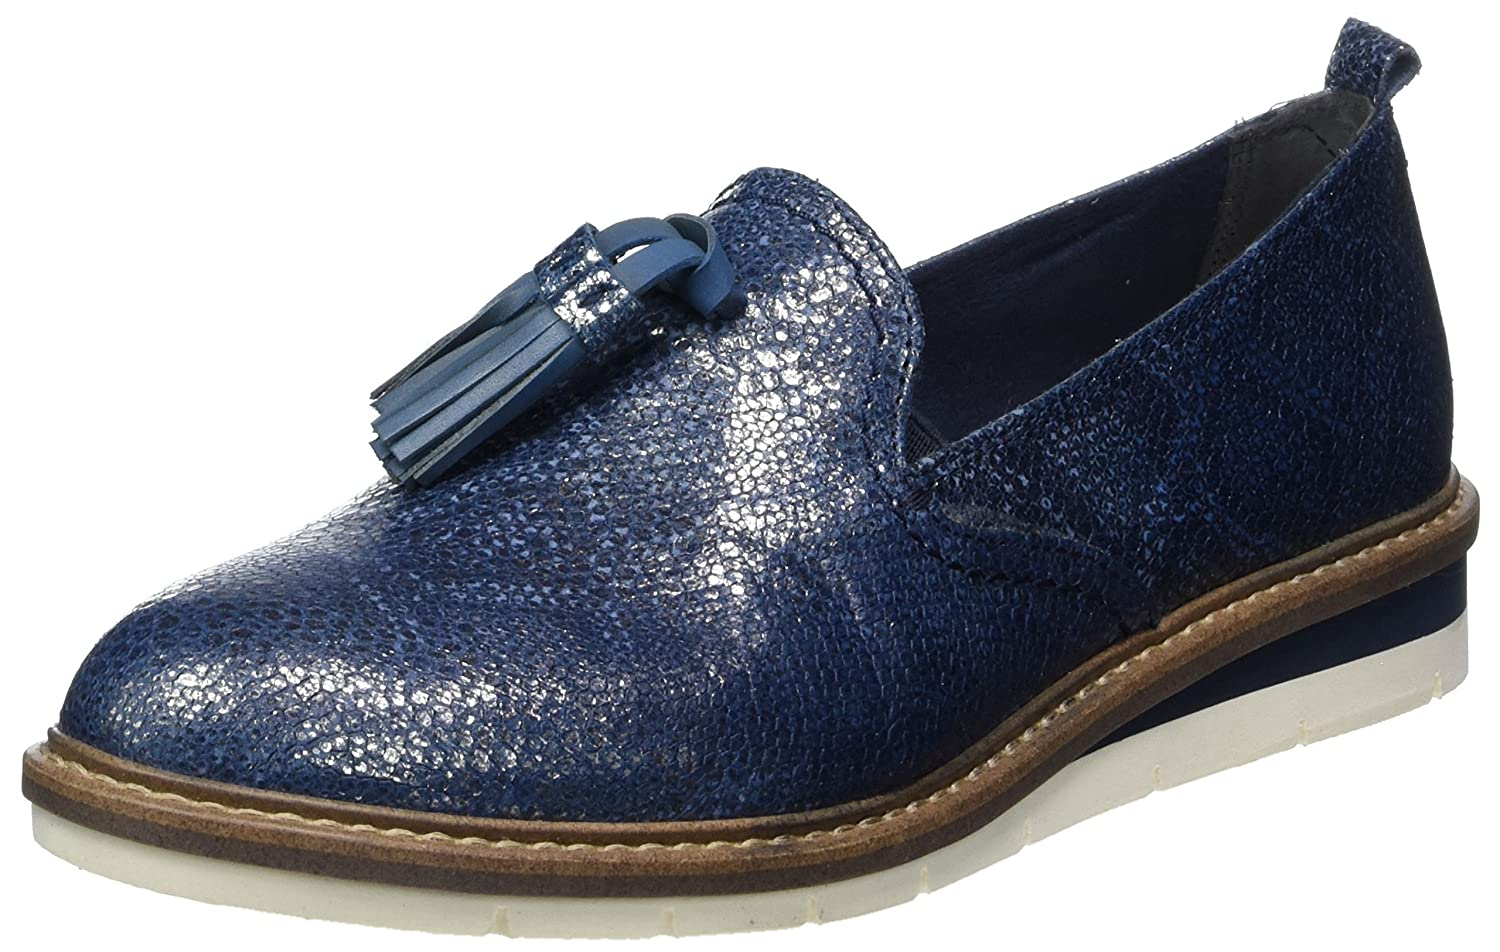 Tamaris 16679 24300, Mocassins Femme Metallic) Bleu (Navy (Navy Metallic) ea2745a - epictionpvp.space